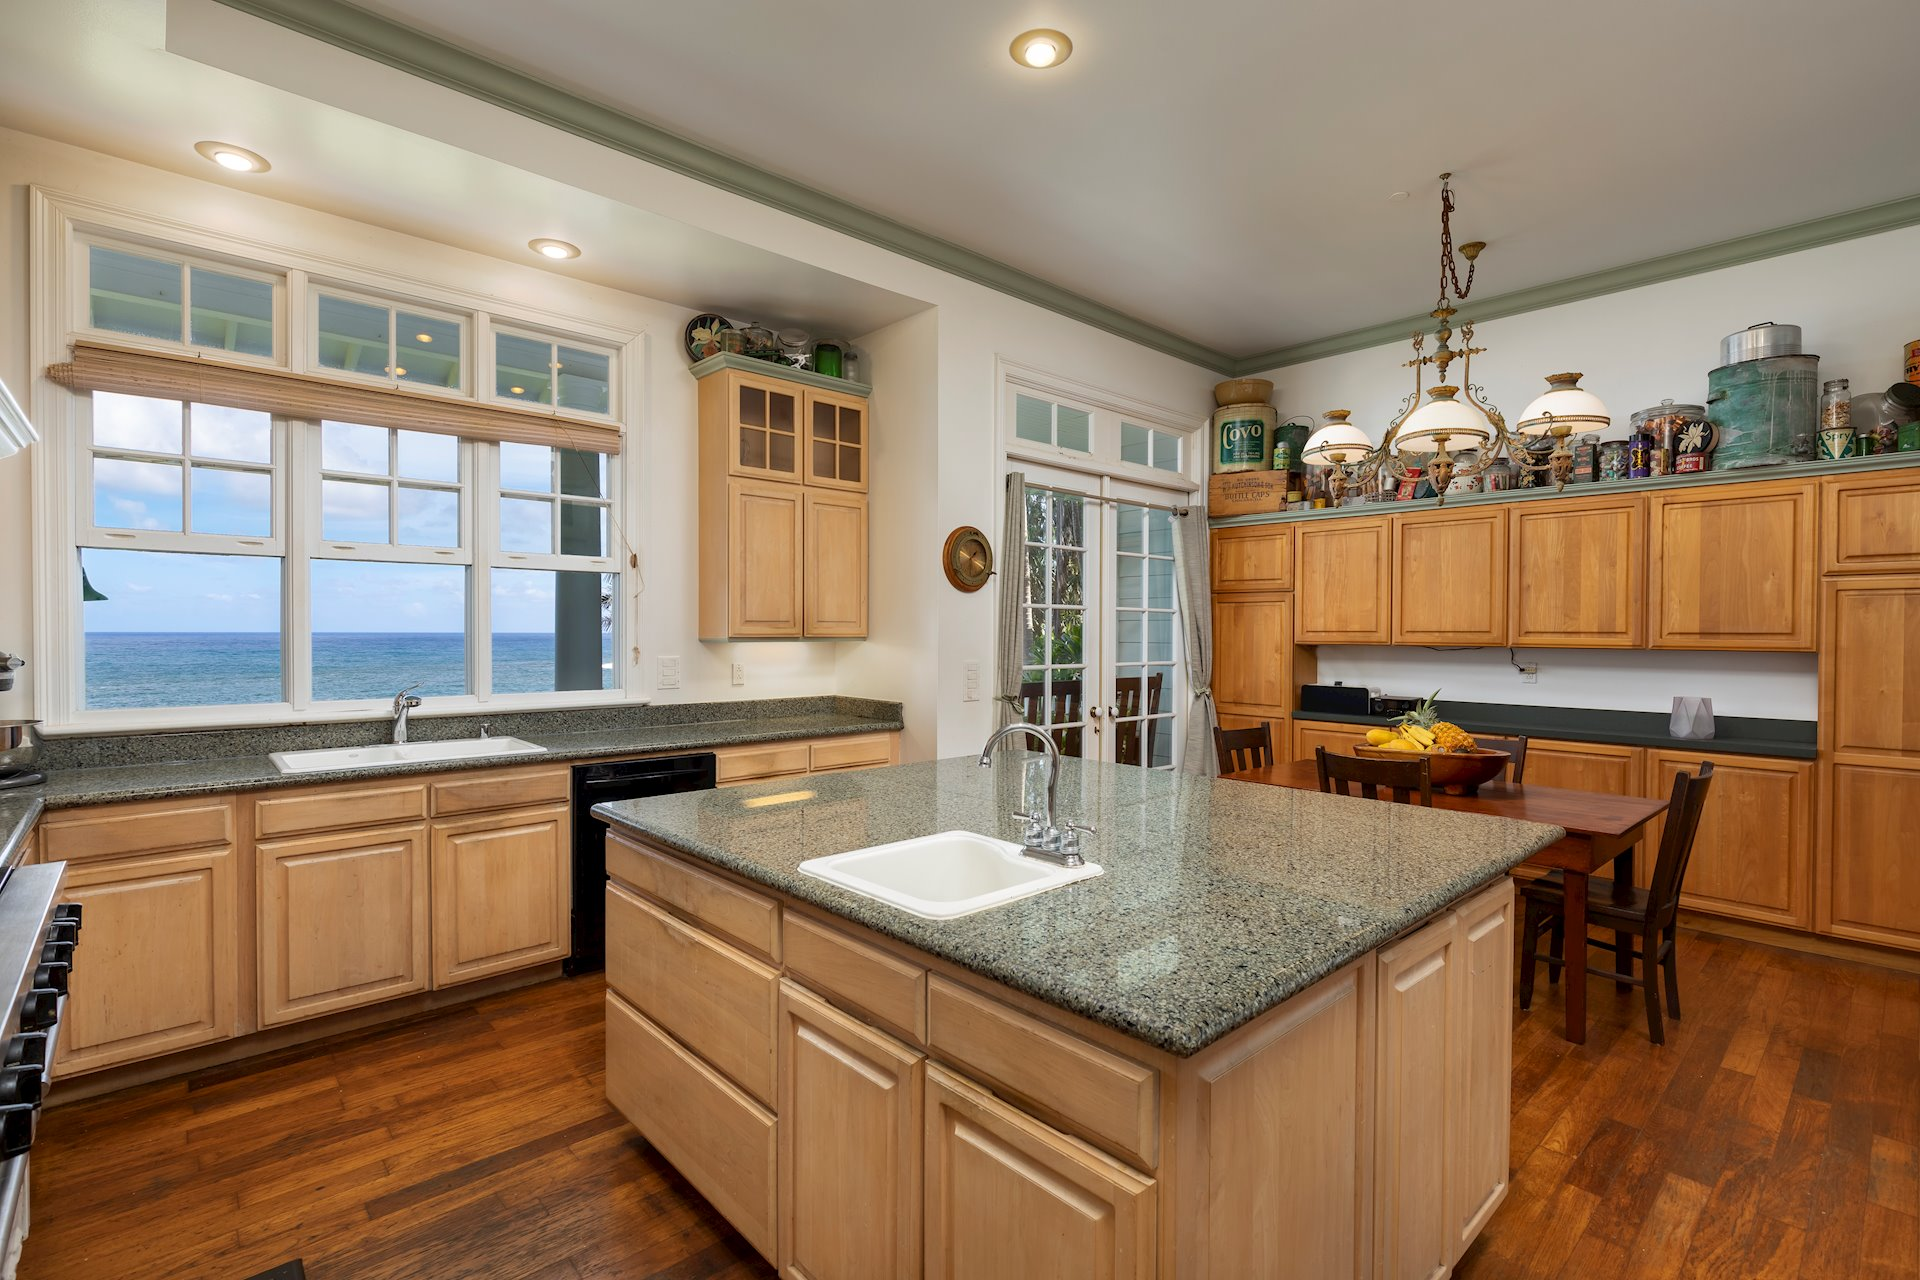 Huge country kitchen with granite, walk in pantry, all the bells and whistles of a first class chef's kitchen.